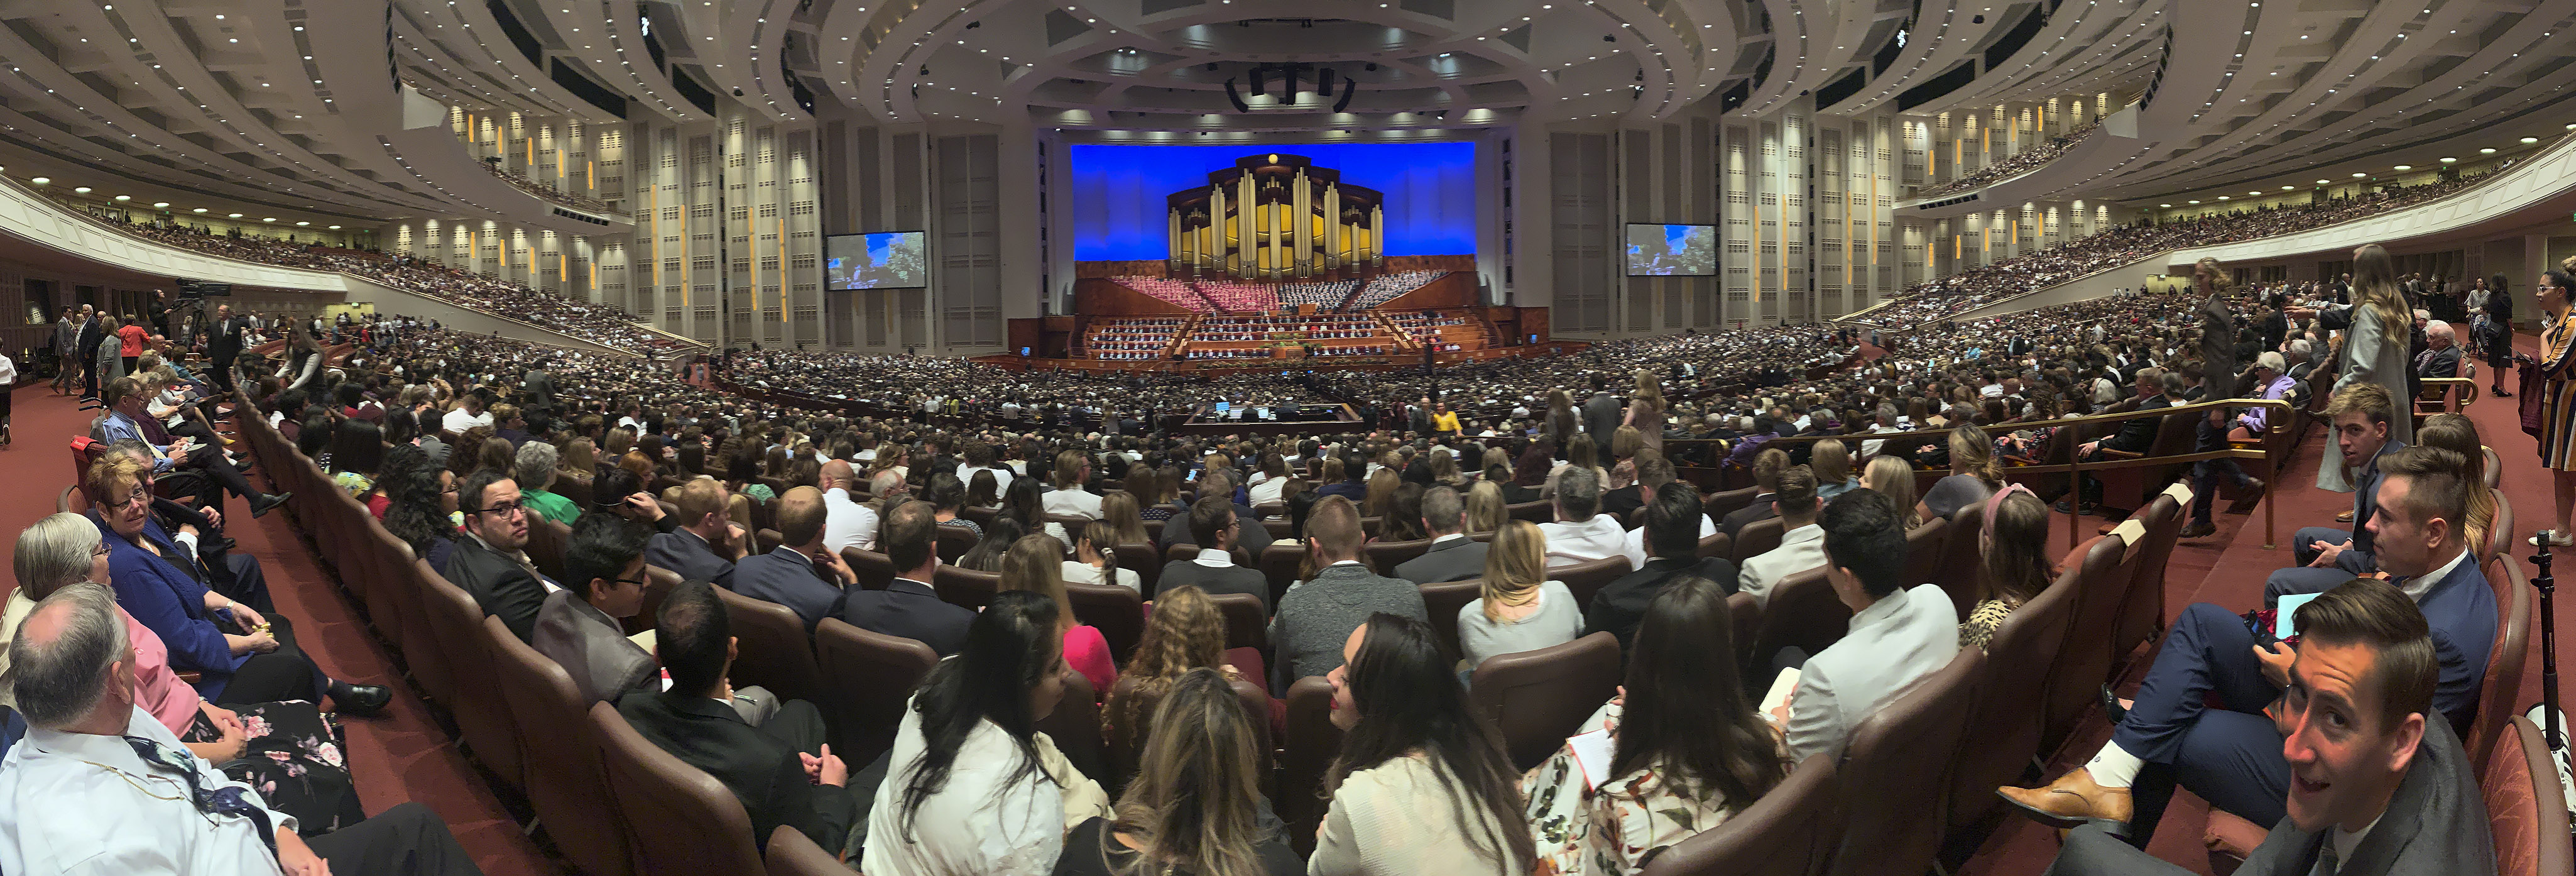 Attendees listen during the Sunday afternoon session of the 189th Semiannual General Conference of The Church of Jesus Christ of Latter-day Saints in Salt Lake City on Oct. 6, 2019.